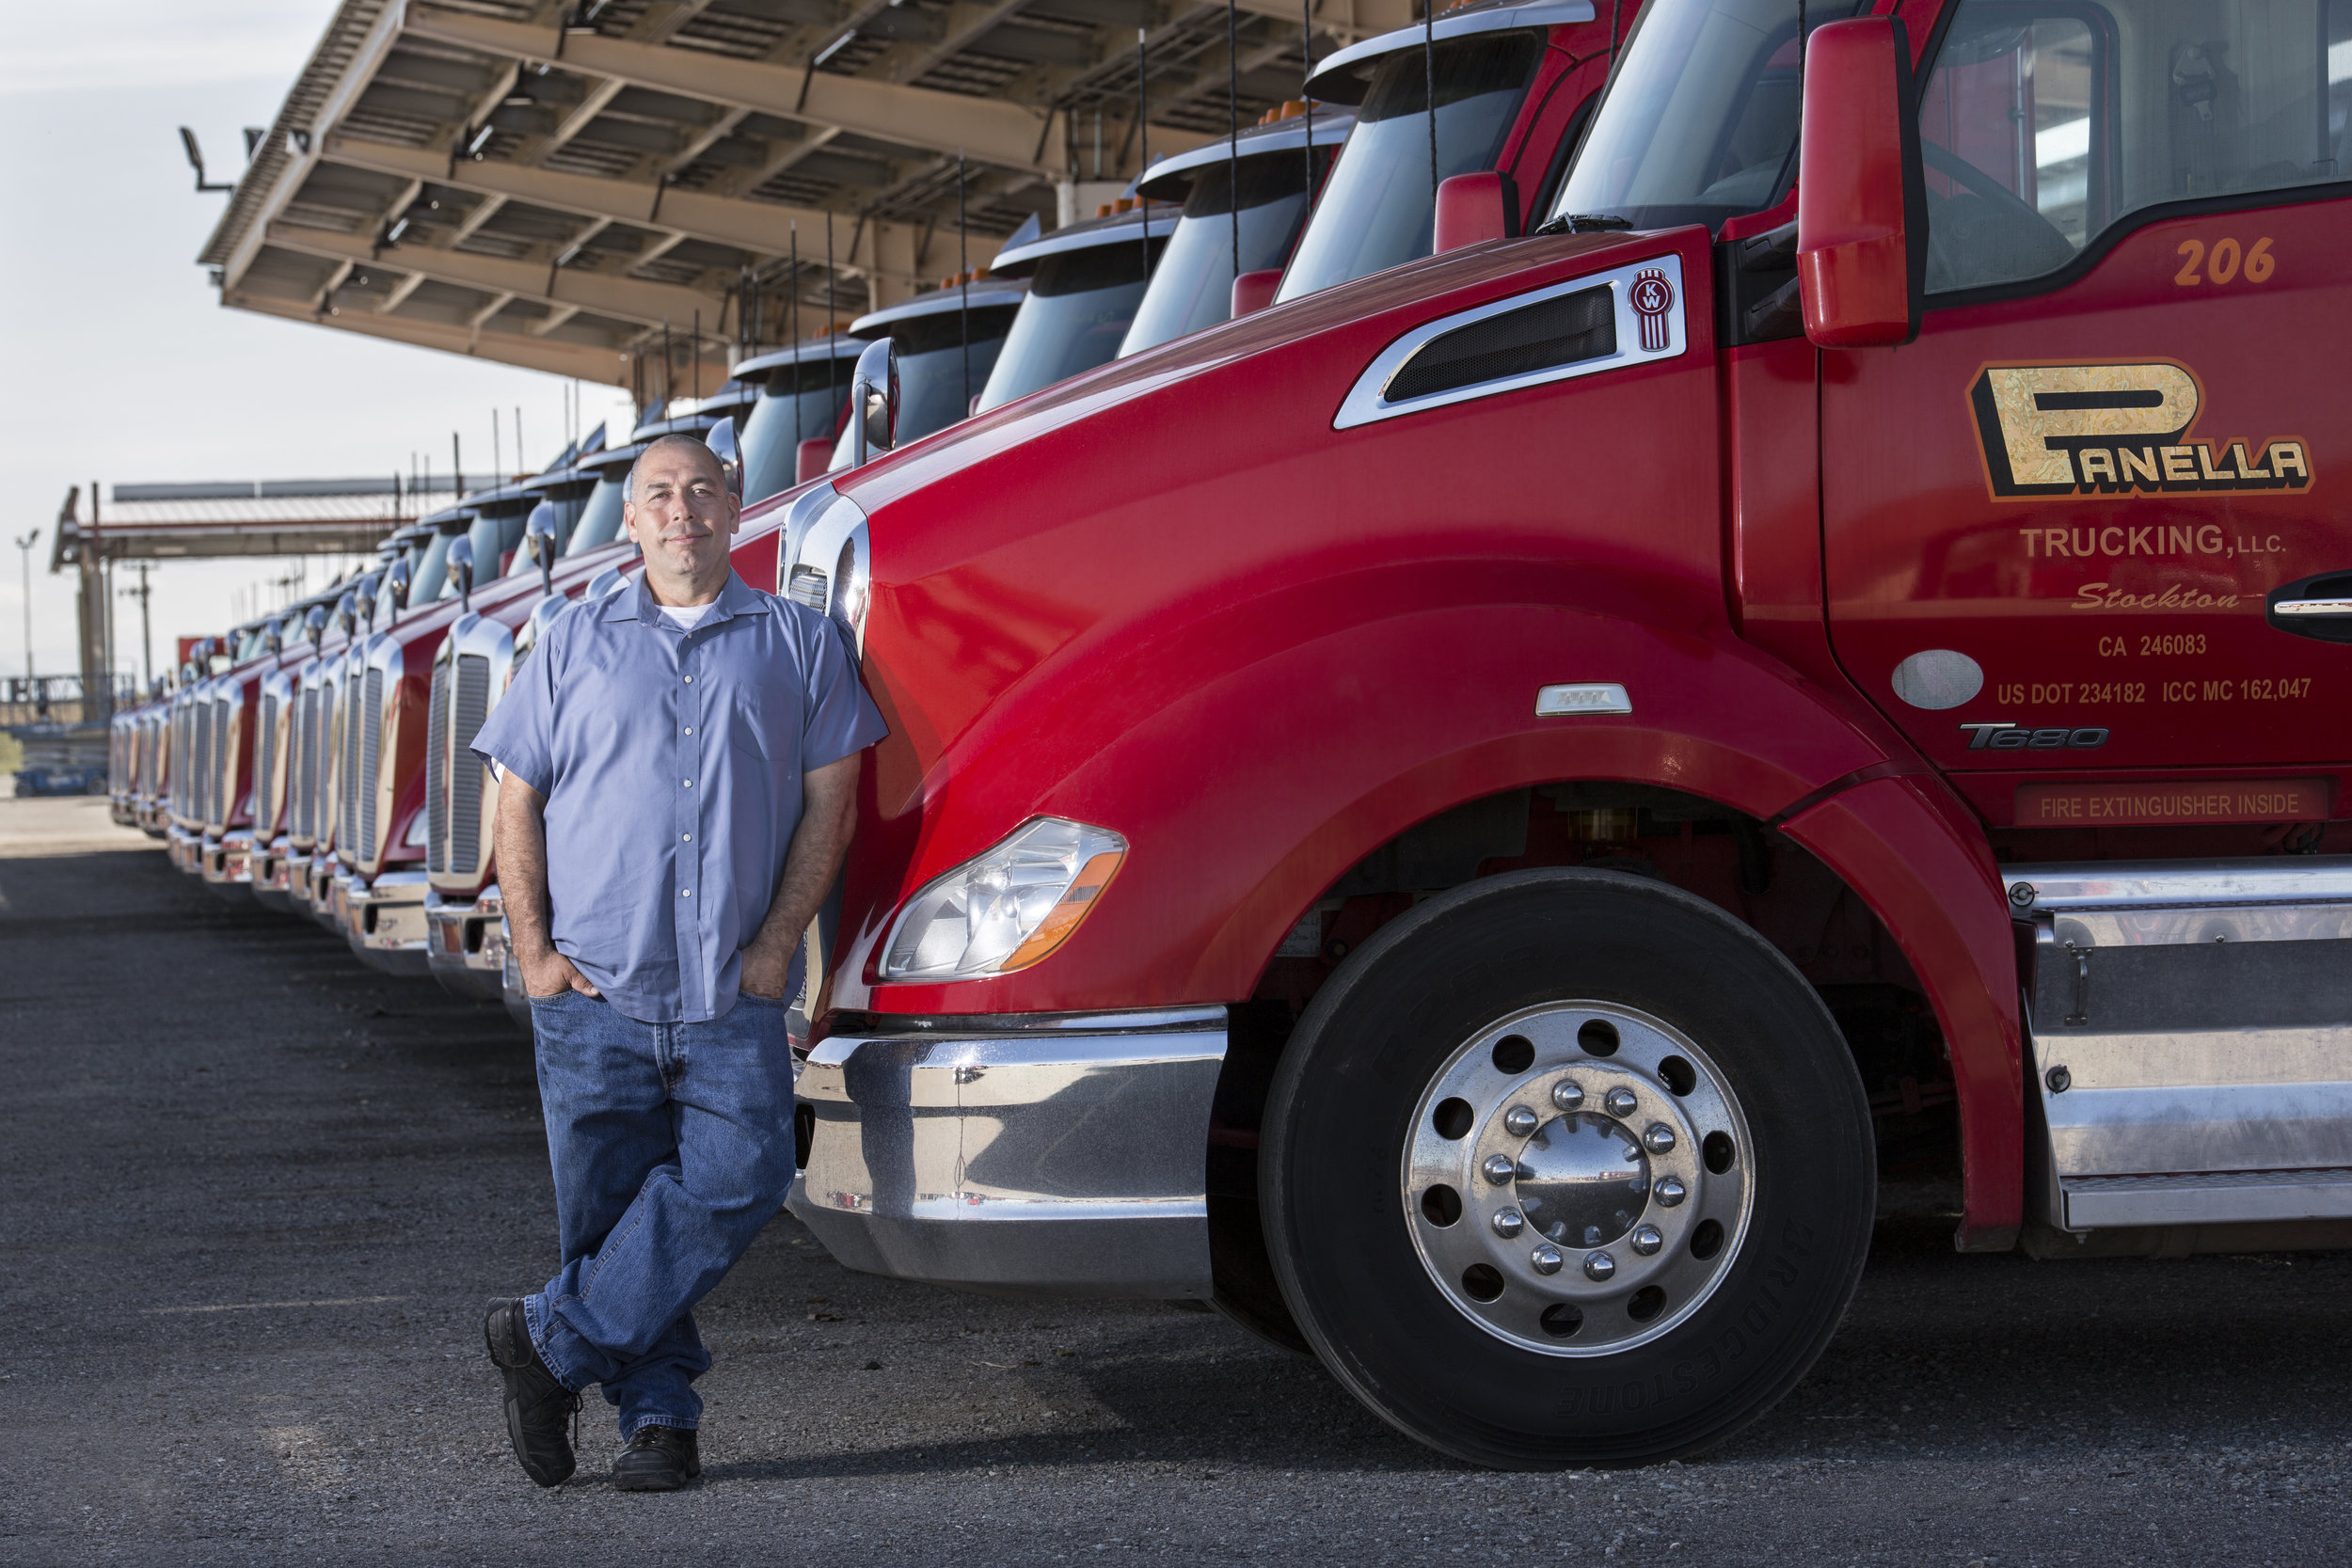 Meet Jose - Jose has been driving for Panella Trucking for the past 10 years. Before that, life happened and he was a bit down on his luck. Without a degree he felt hopeless. But enrolling with Western Pacific Truck School he's bringing in over $70k/year, has bought a home, and is enjoying a fruitful career.Enroll Now